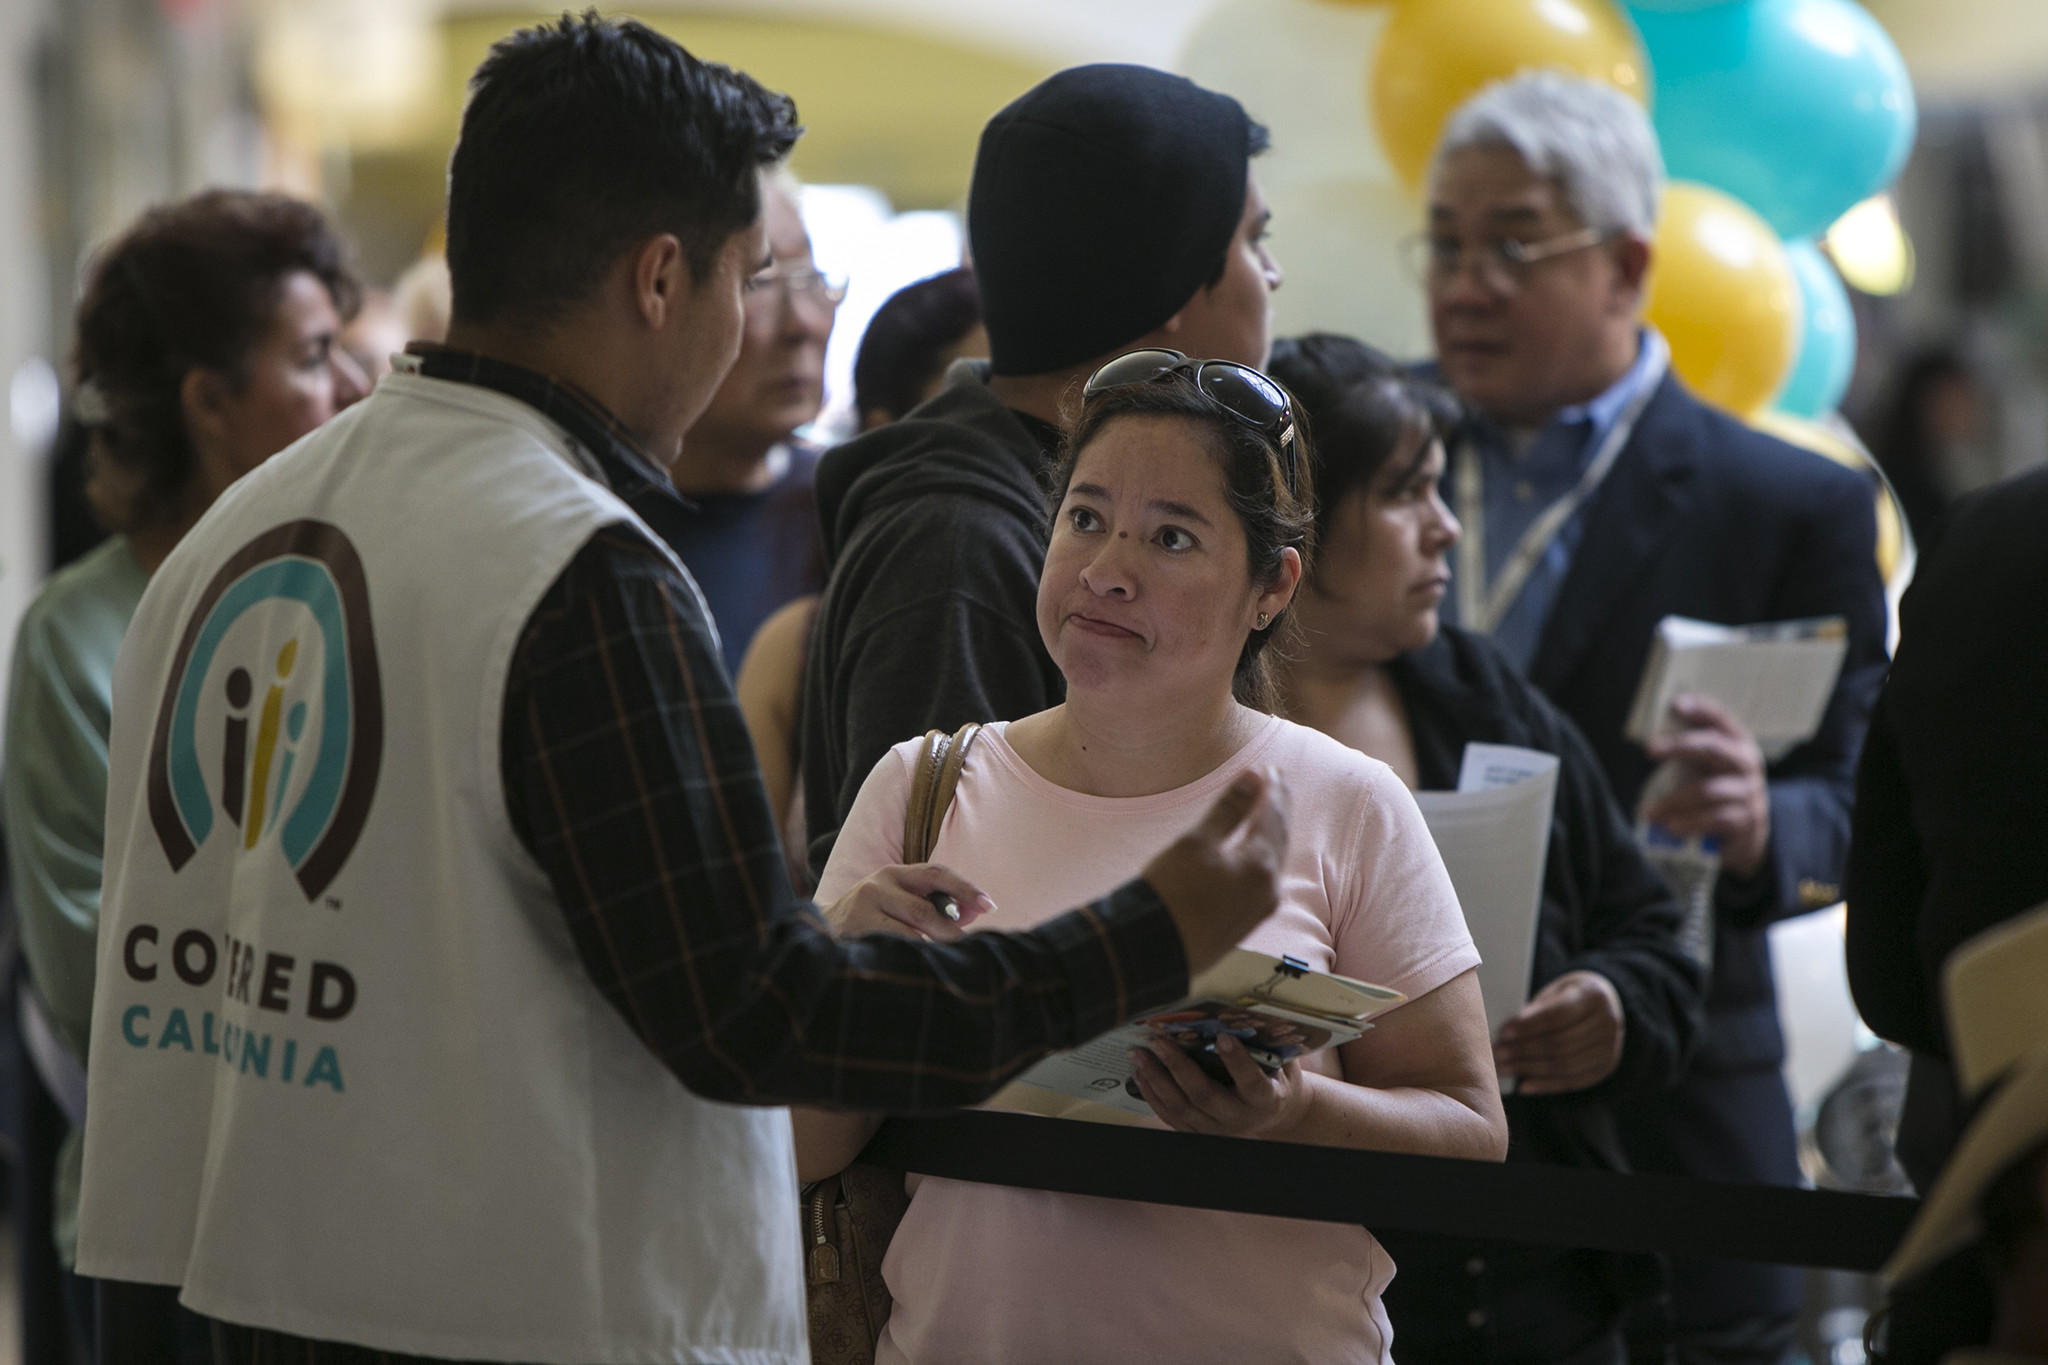 People stand in line Saturday in Panorama City, Calif., to sign up for Obamacare.